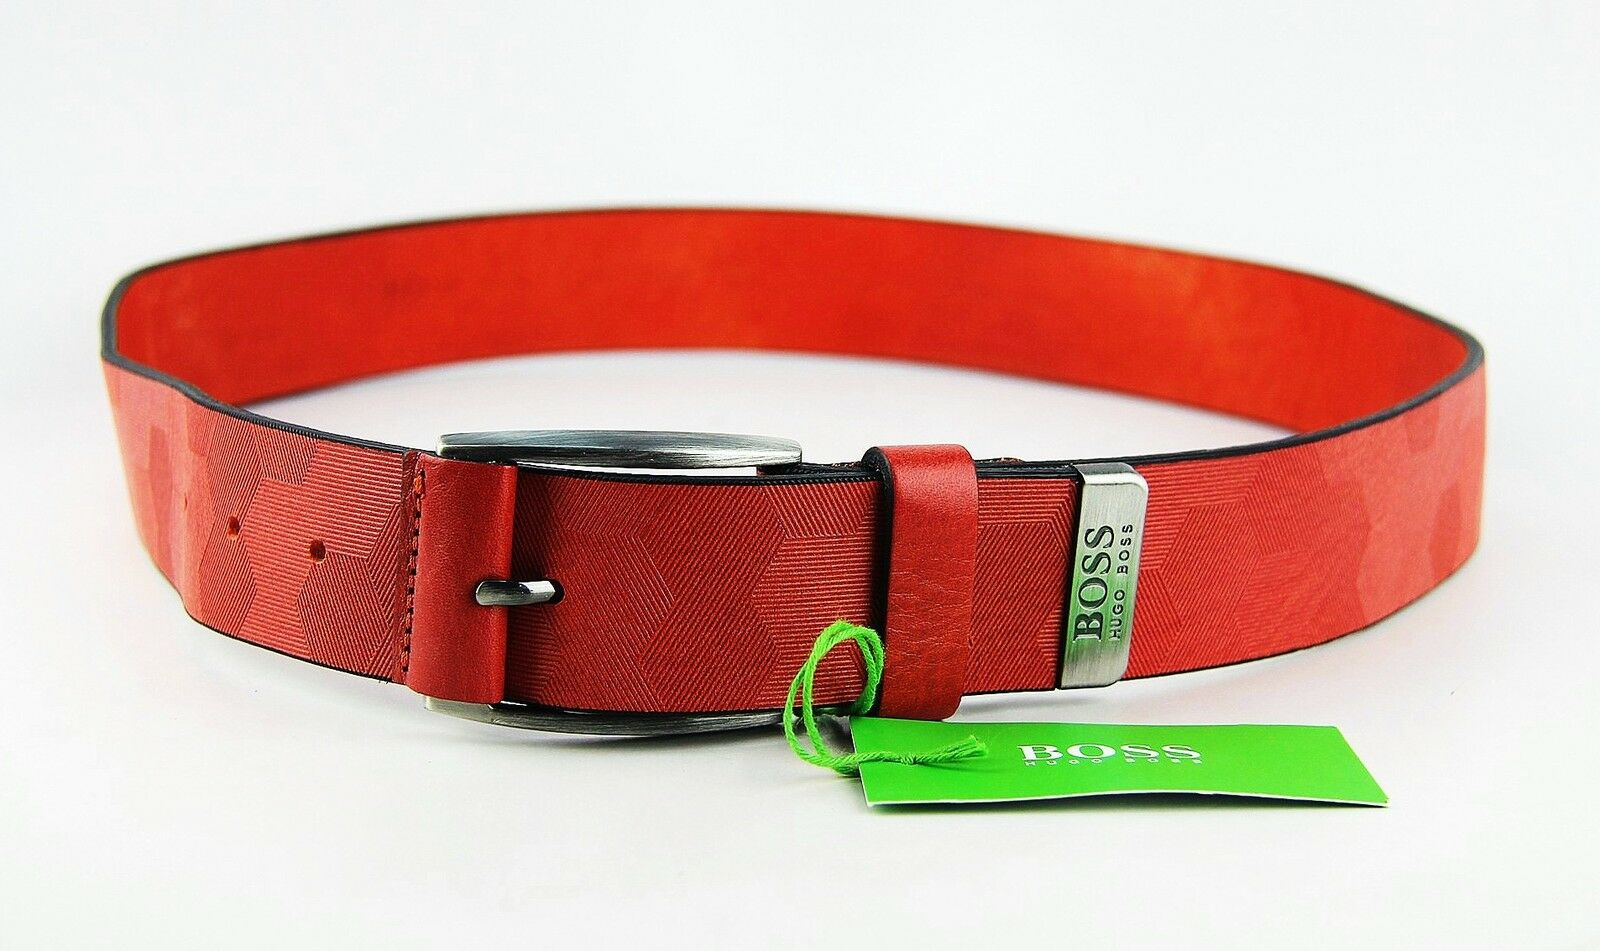 HUGO BOSS vert LABEL TAMORTY TEXTUrouge cuir BELT Taille 34 nouveau ITALY   17